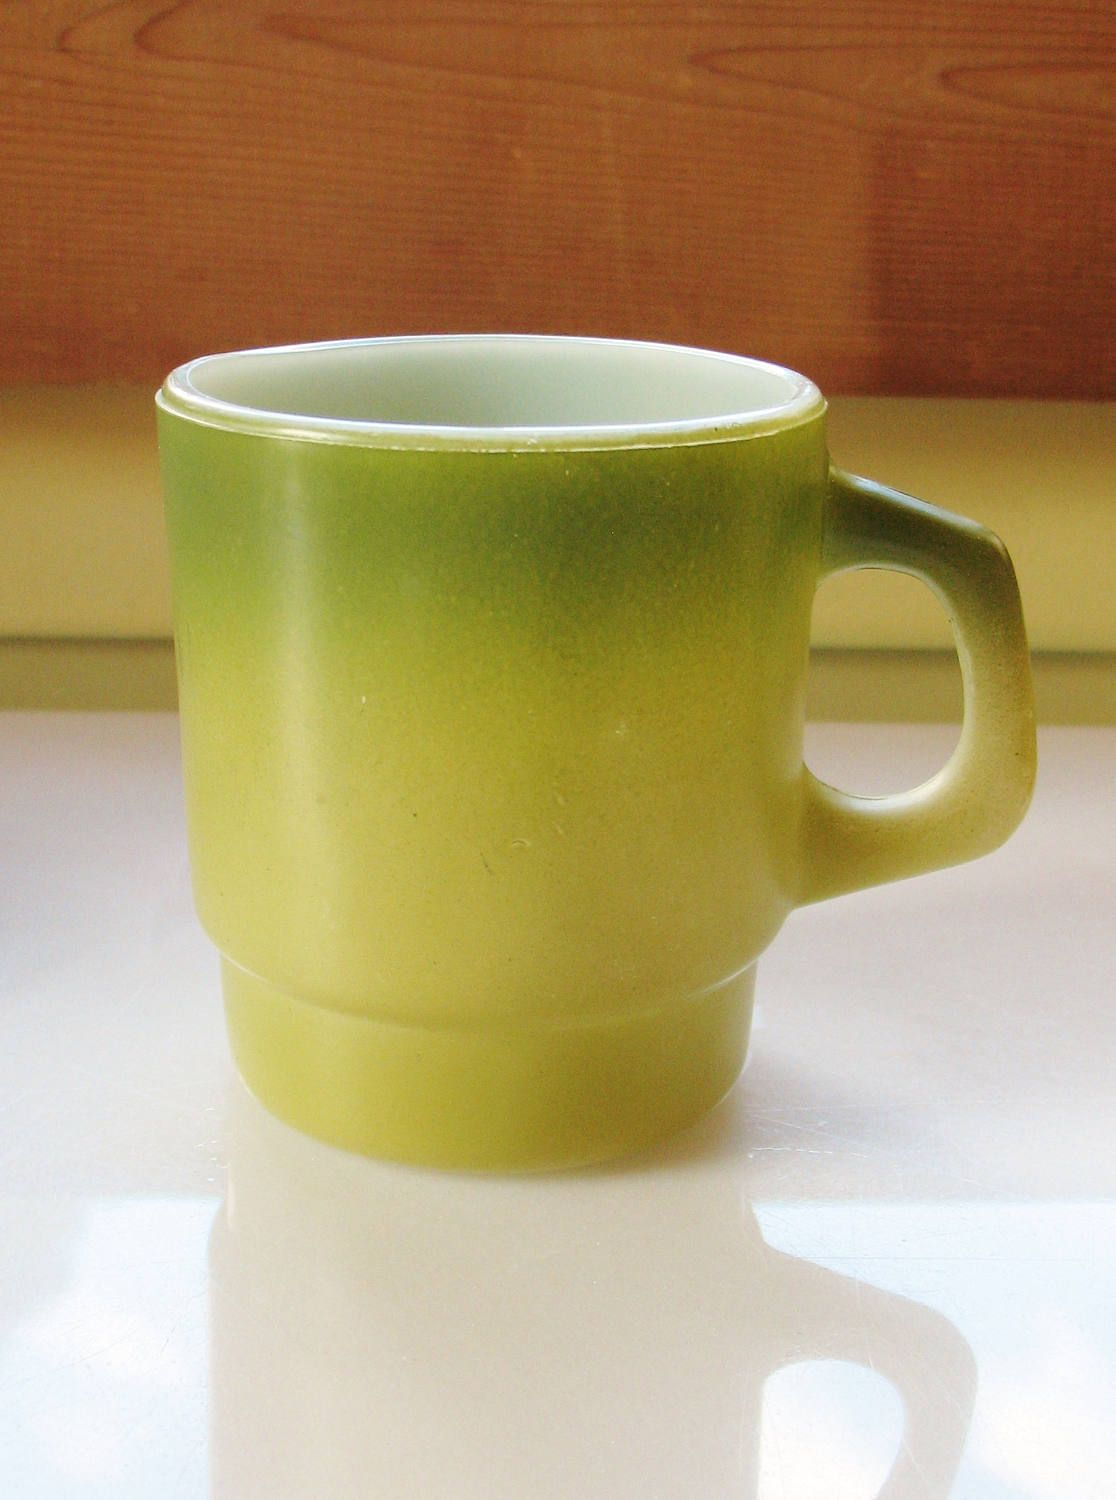 vintage avocado green anchor hocking fire king mug cup mid century  - vintage avocado green anchor hocking fire king mug cup mid century modernkitchenware by eclecticka on